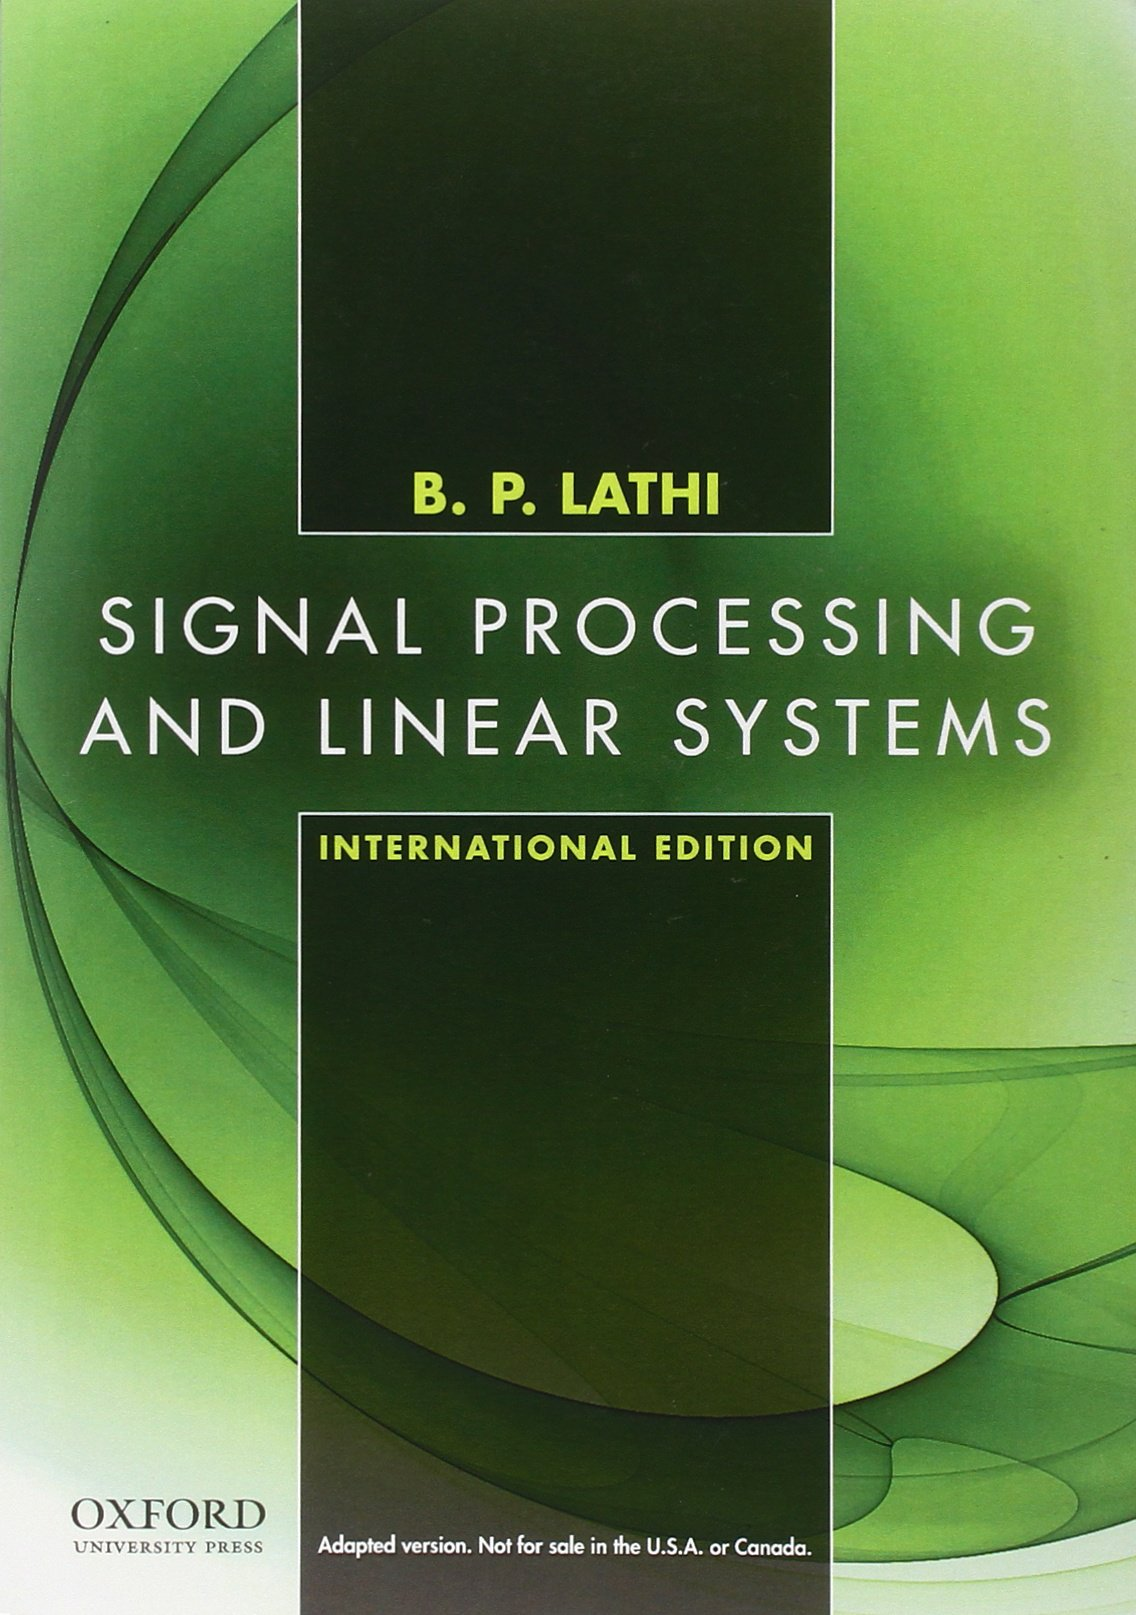 Signal Processing and Linear Systems, International Edition: Lathi  (author): 9780195392579: Books - Amazon.ca